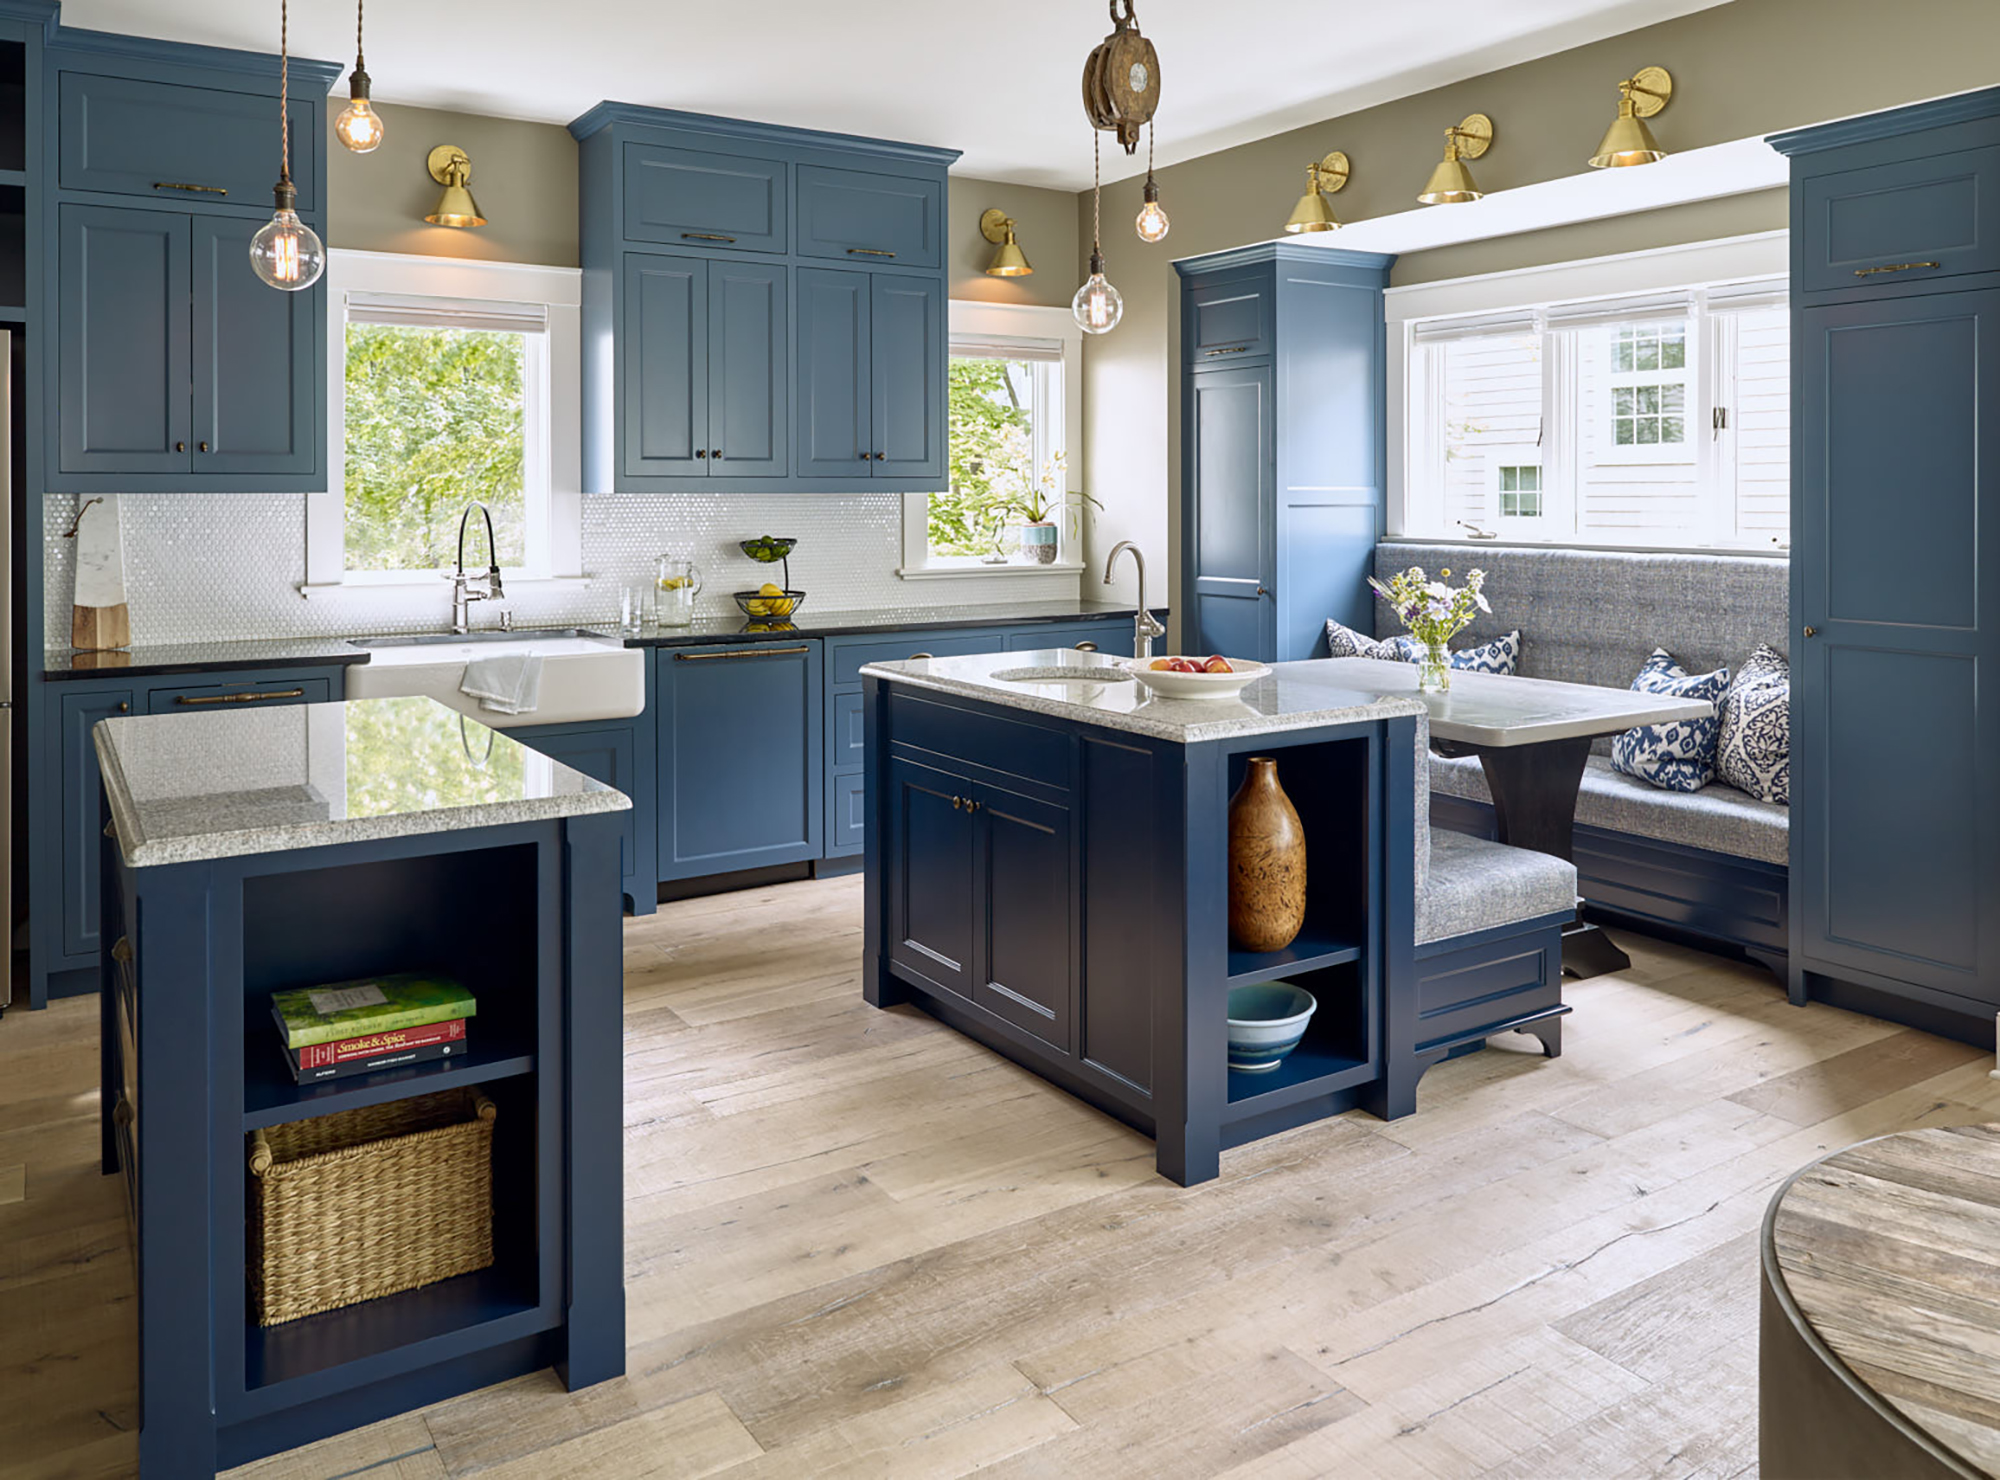 Large blue kitchen with built-in bench sitting areas and unique vintage lighting.